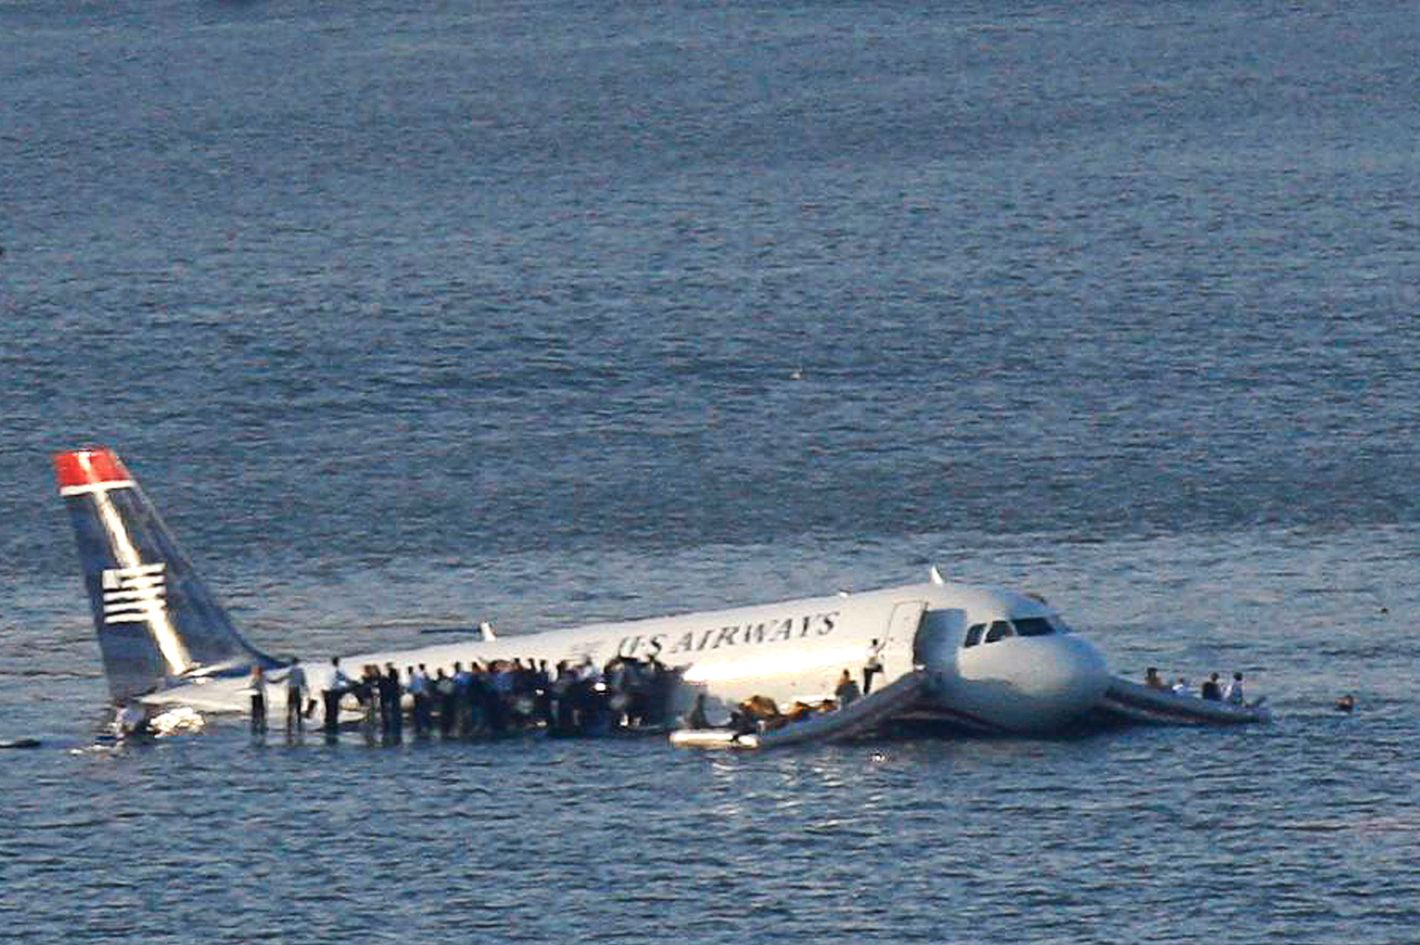 Passengers stand on the wings of a U.S. Airways plane as a ferry pulls up to it after it landed in the Hudson River in New York, January 15, 2009. Local media said the plane was an Airbus with 146 passengers and five crew which had just taken off from La Guardia Airport and was trying to return after apparently striking a flock of birds.